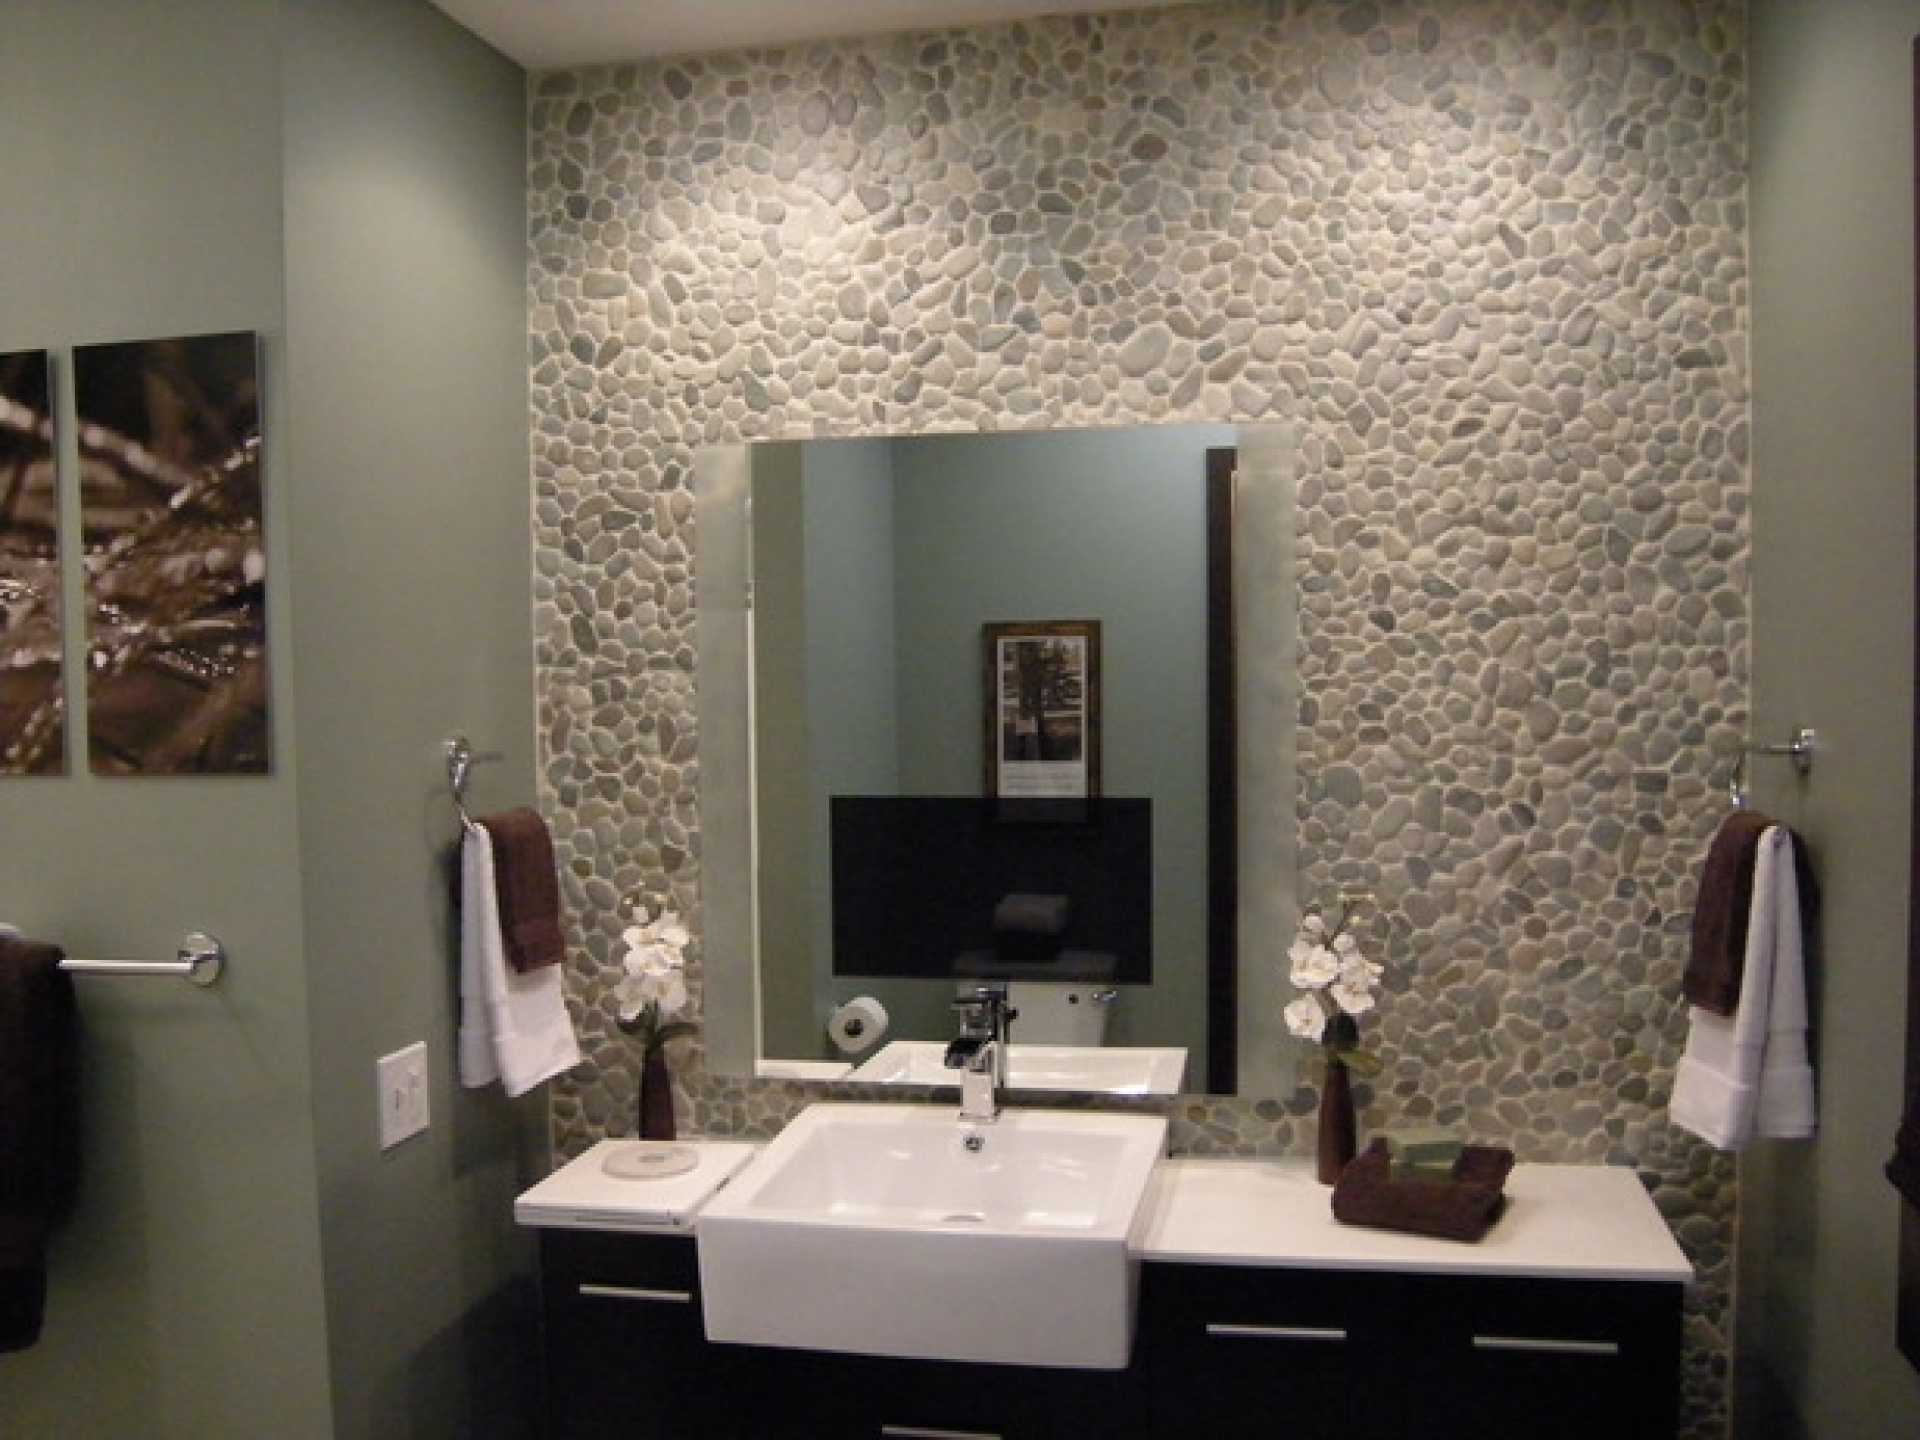 Surprising Stone Wall to Create Bathroom Focal Point with Black and White Vanity